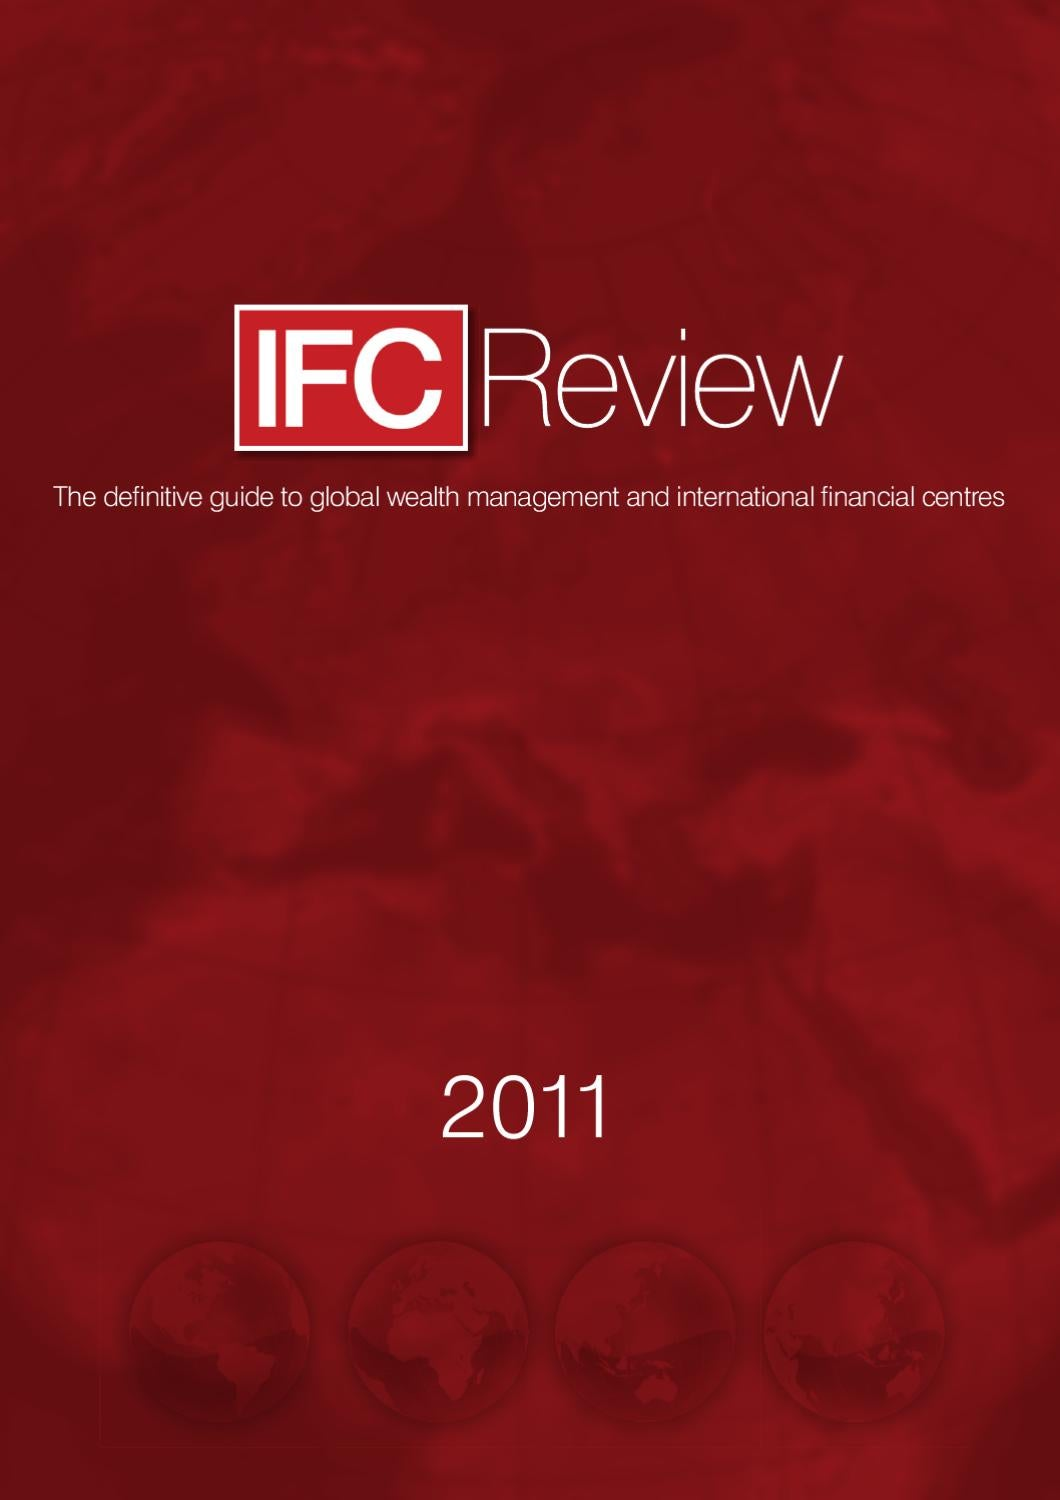 Cash Pool Organschaft Ifc Review 2011 By Vortex Creative Ltd Issuu